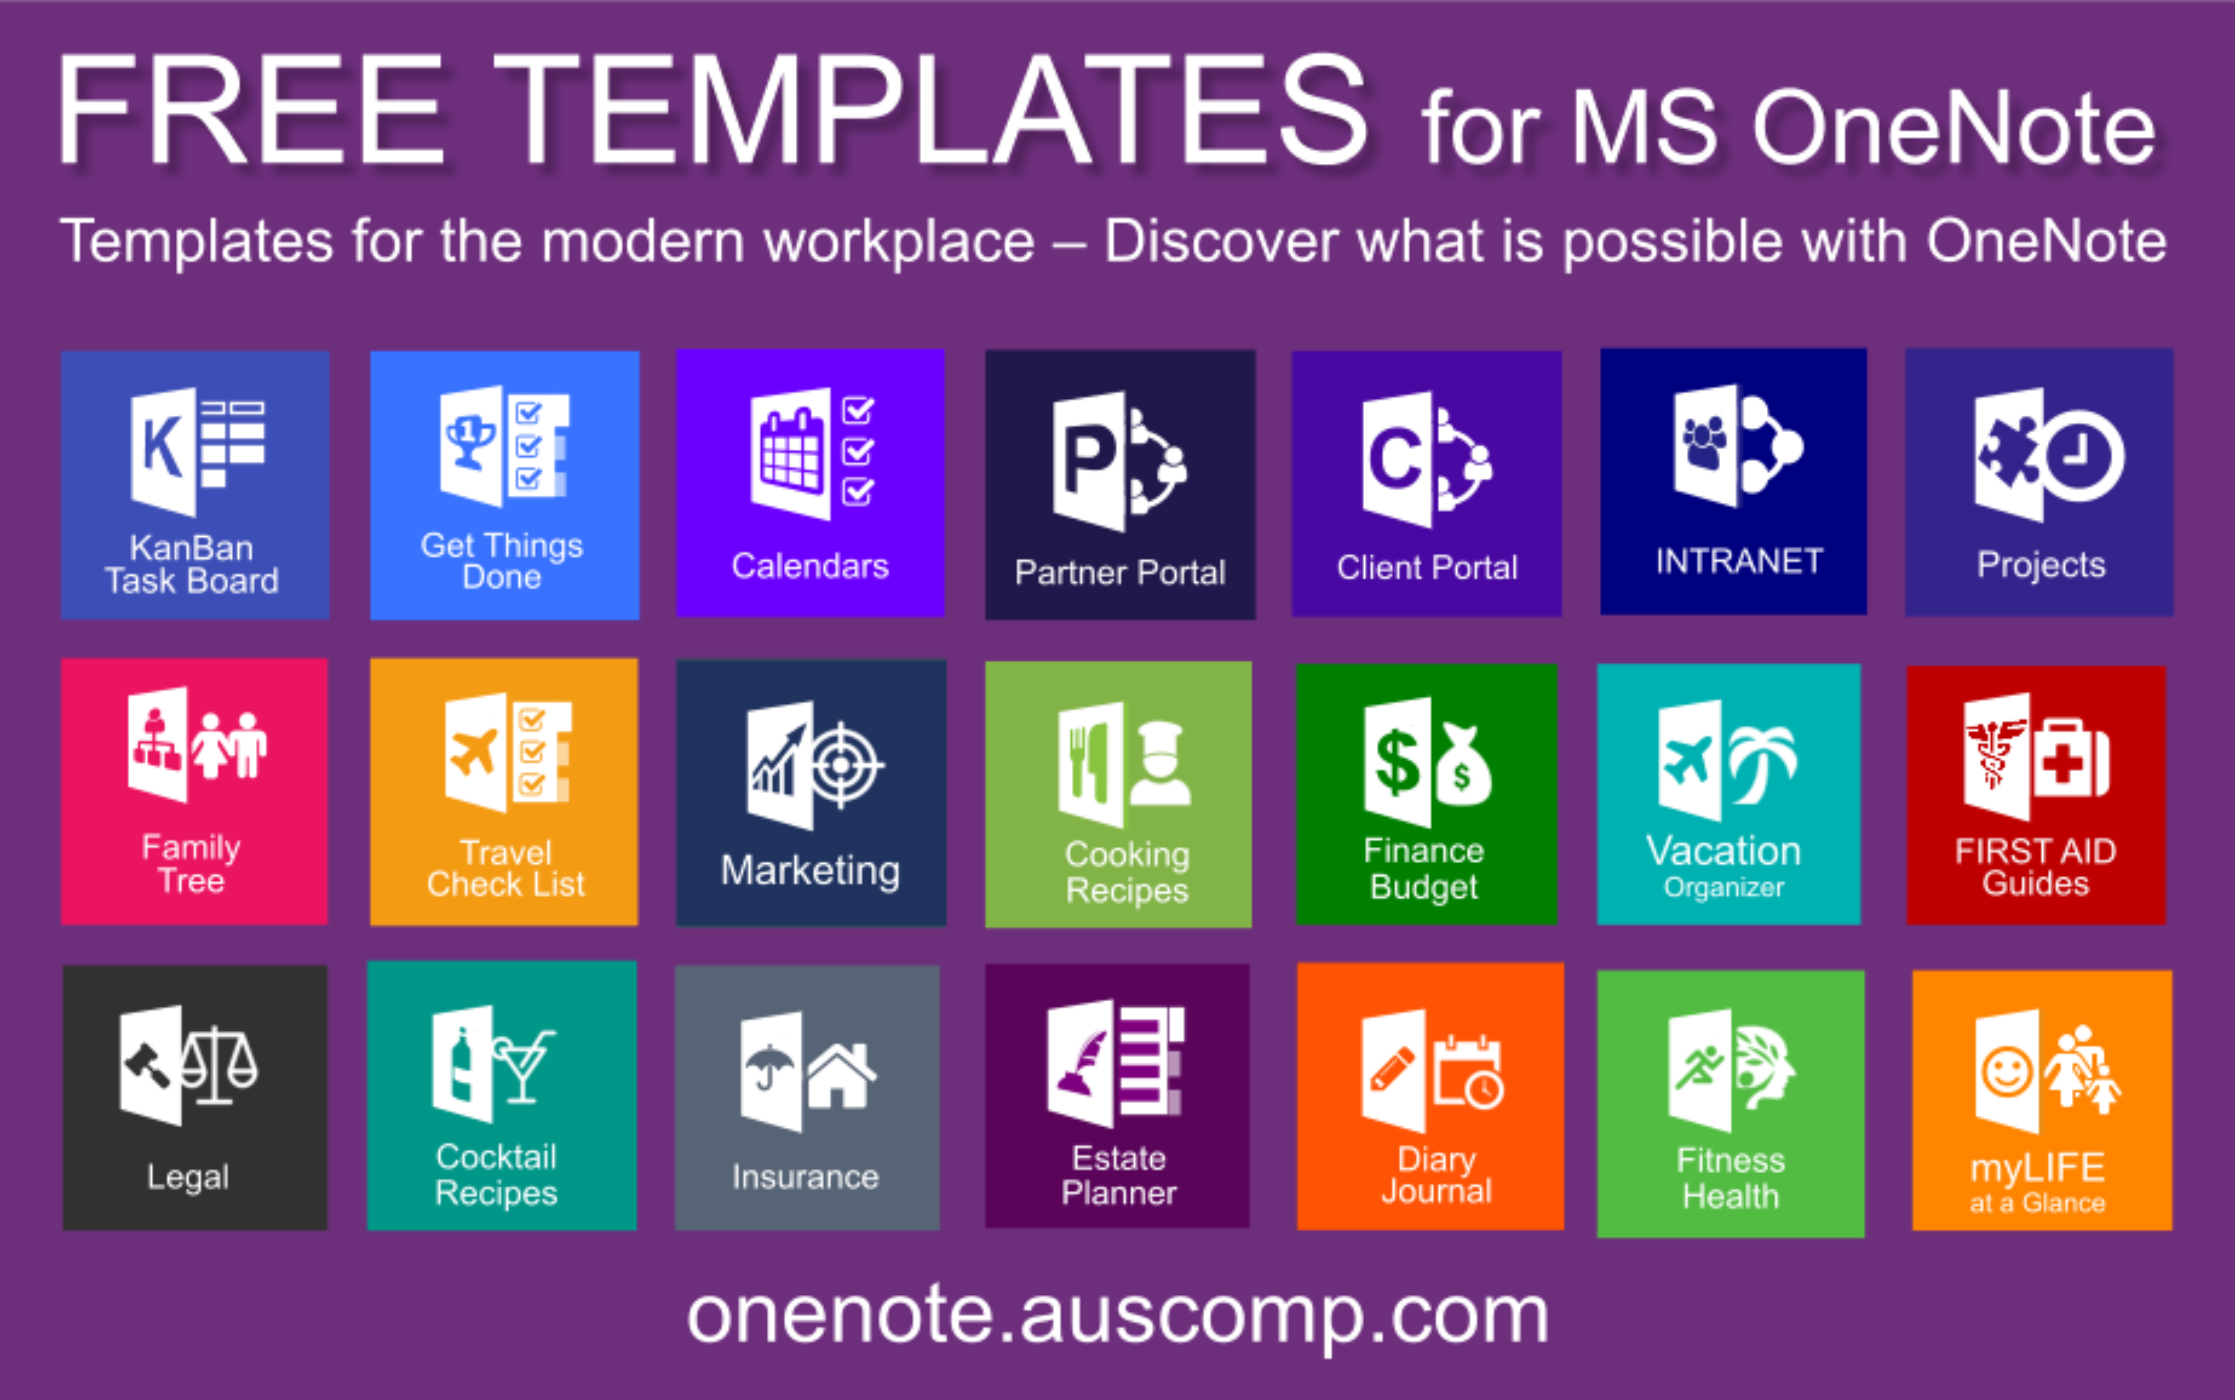 Download Free OneNote Templates - Biggest Template ... on newsletter excel template, newsletter indesign template, newsletter publisher template, newsletter powerpoint template, newsletter photoshop template, newsletter email template, newsletter word template, newsletter microsoft office template,